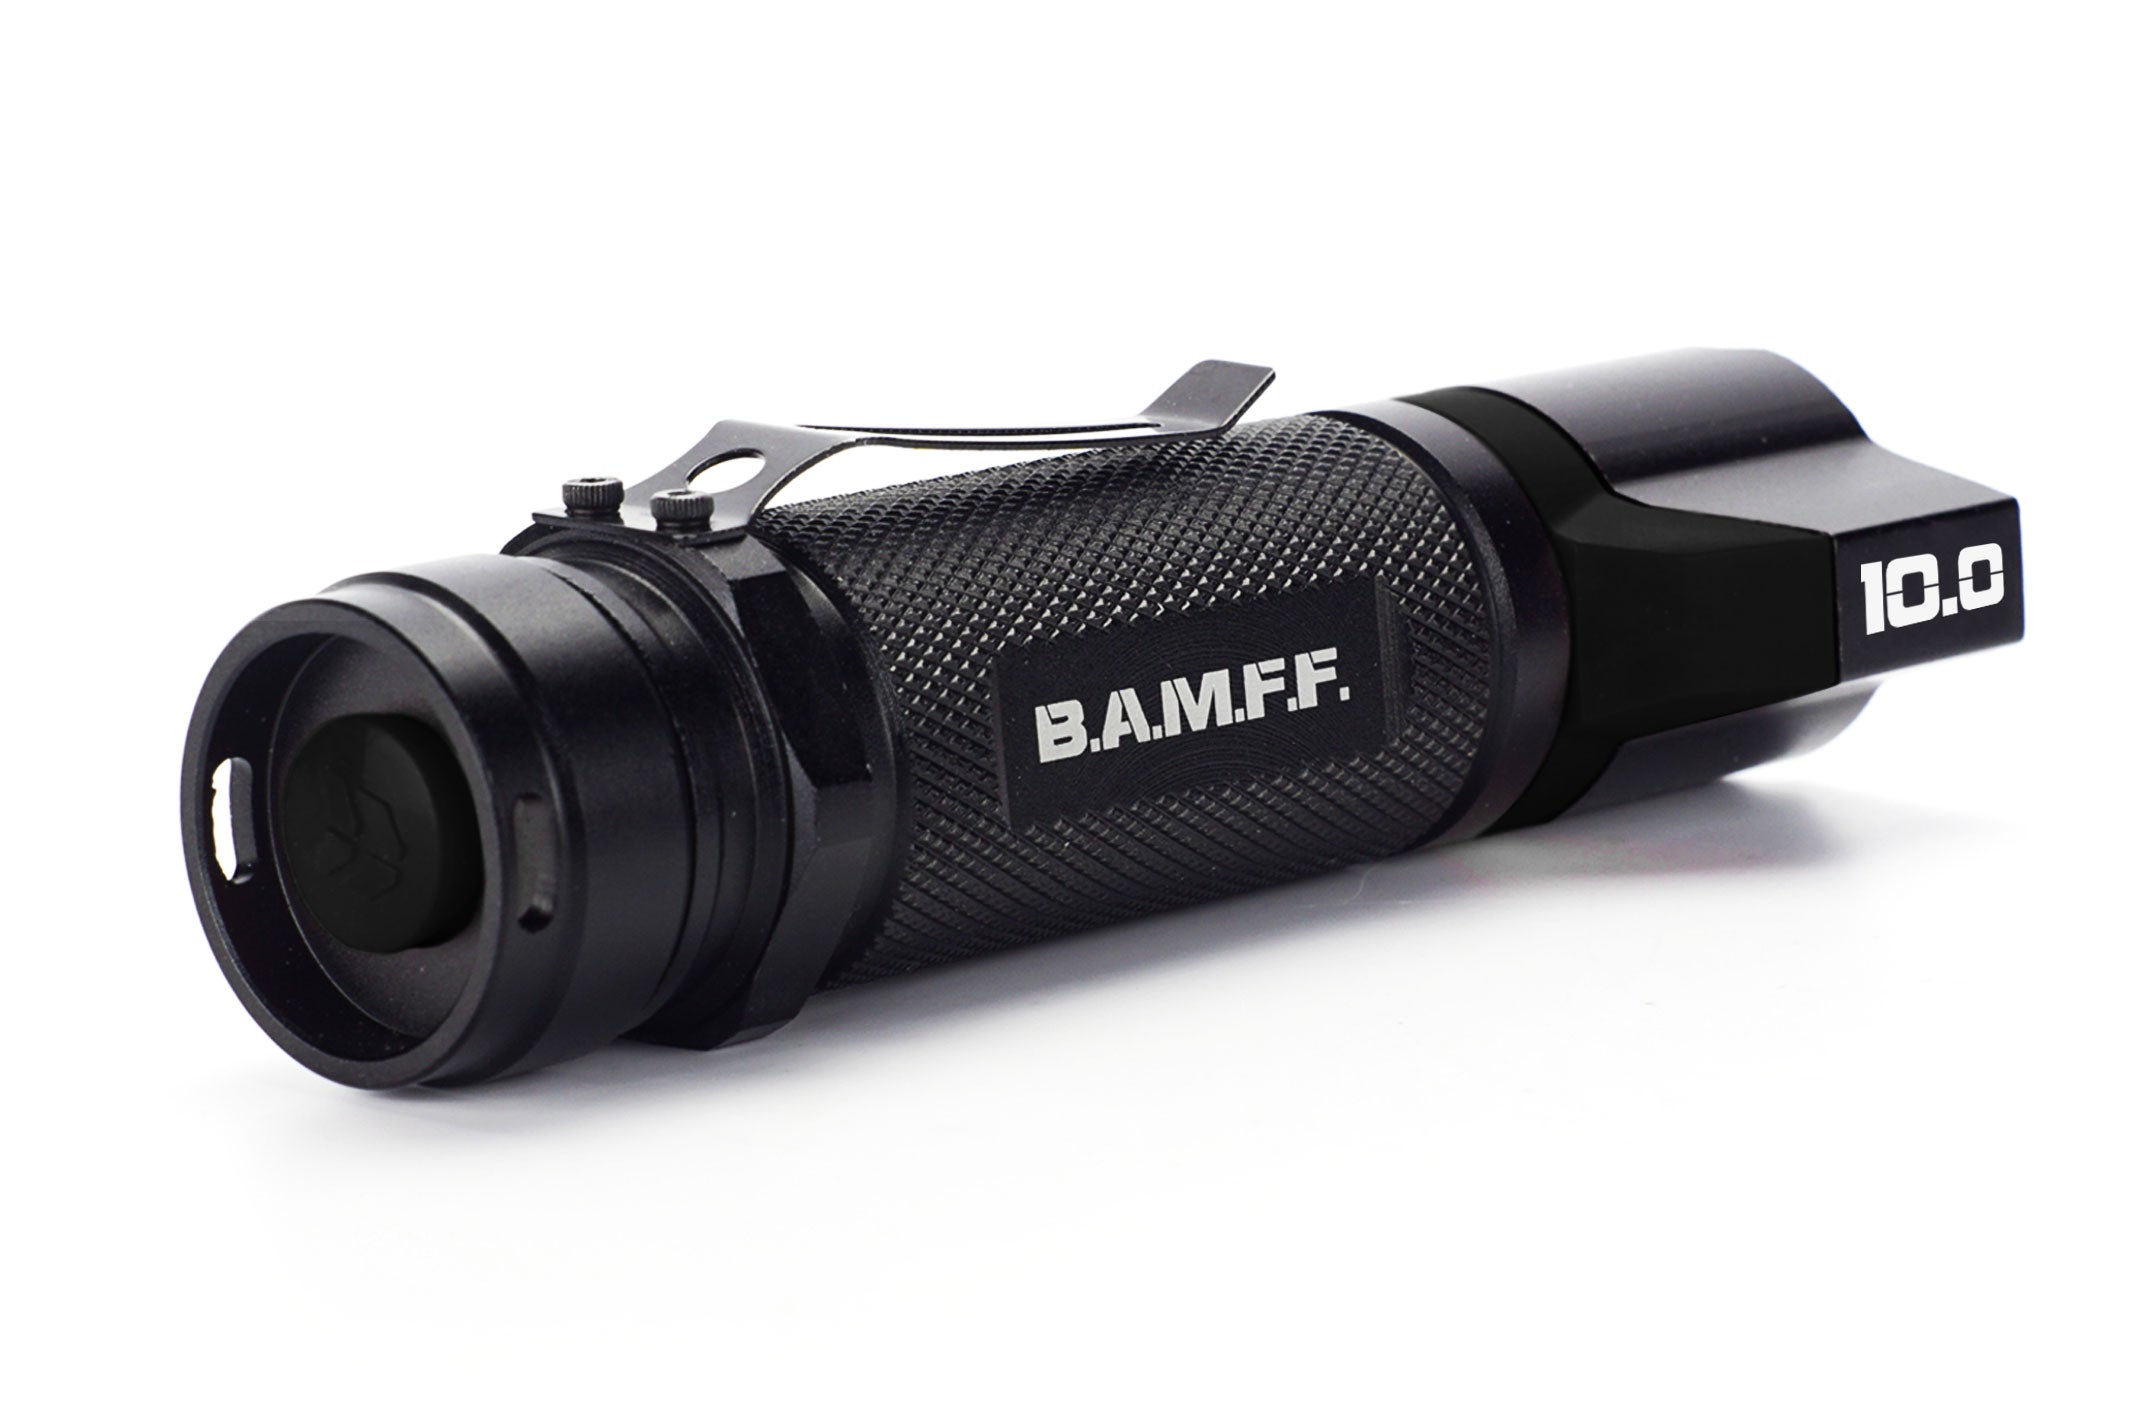 BAMFF 10.0 Tactical Tail Switch